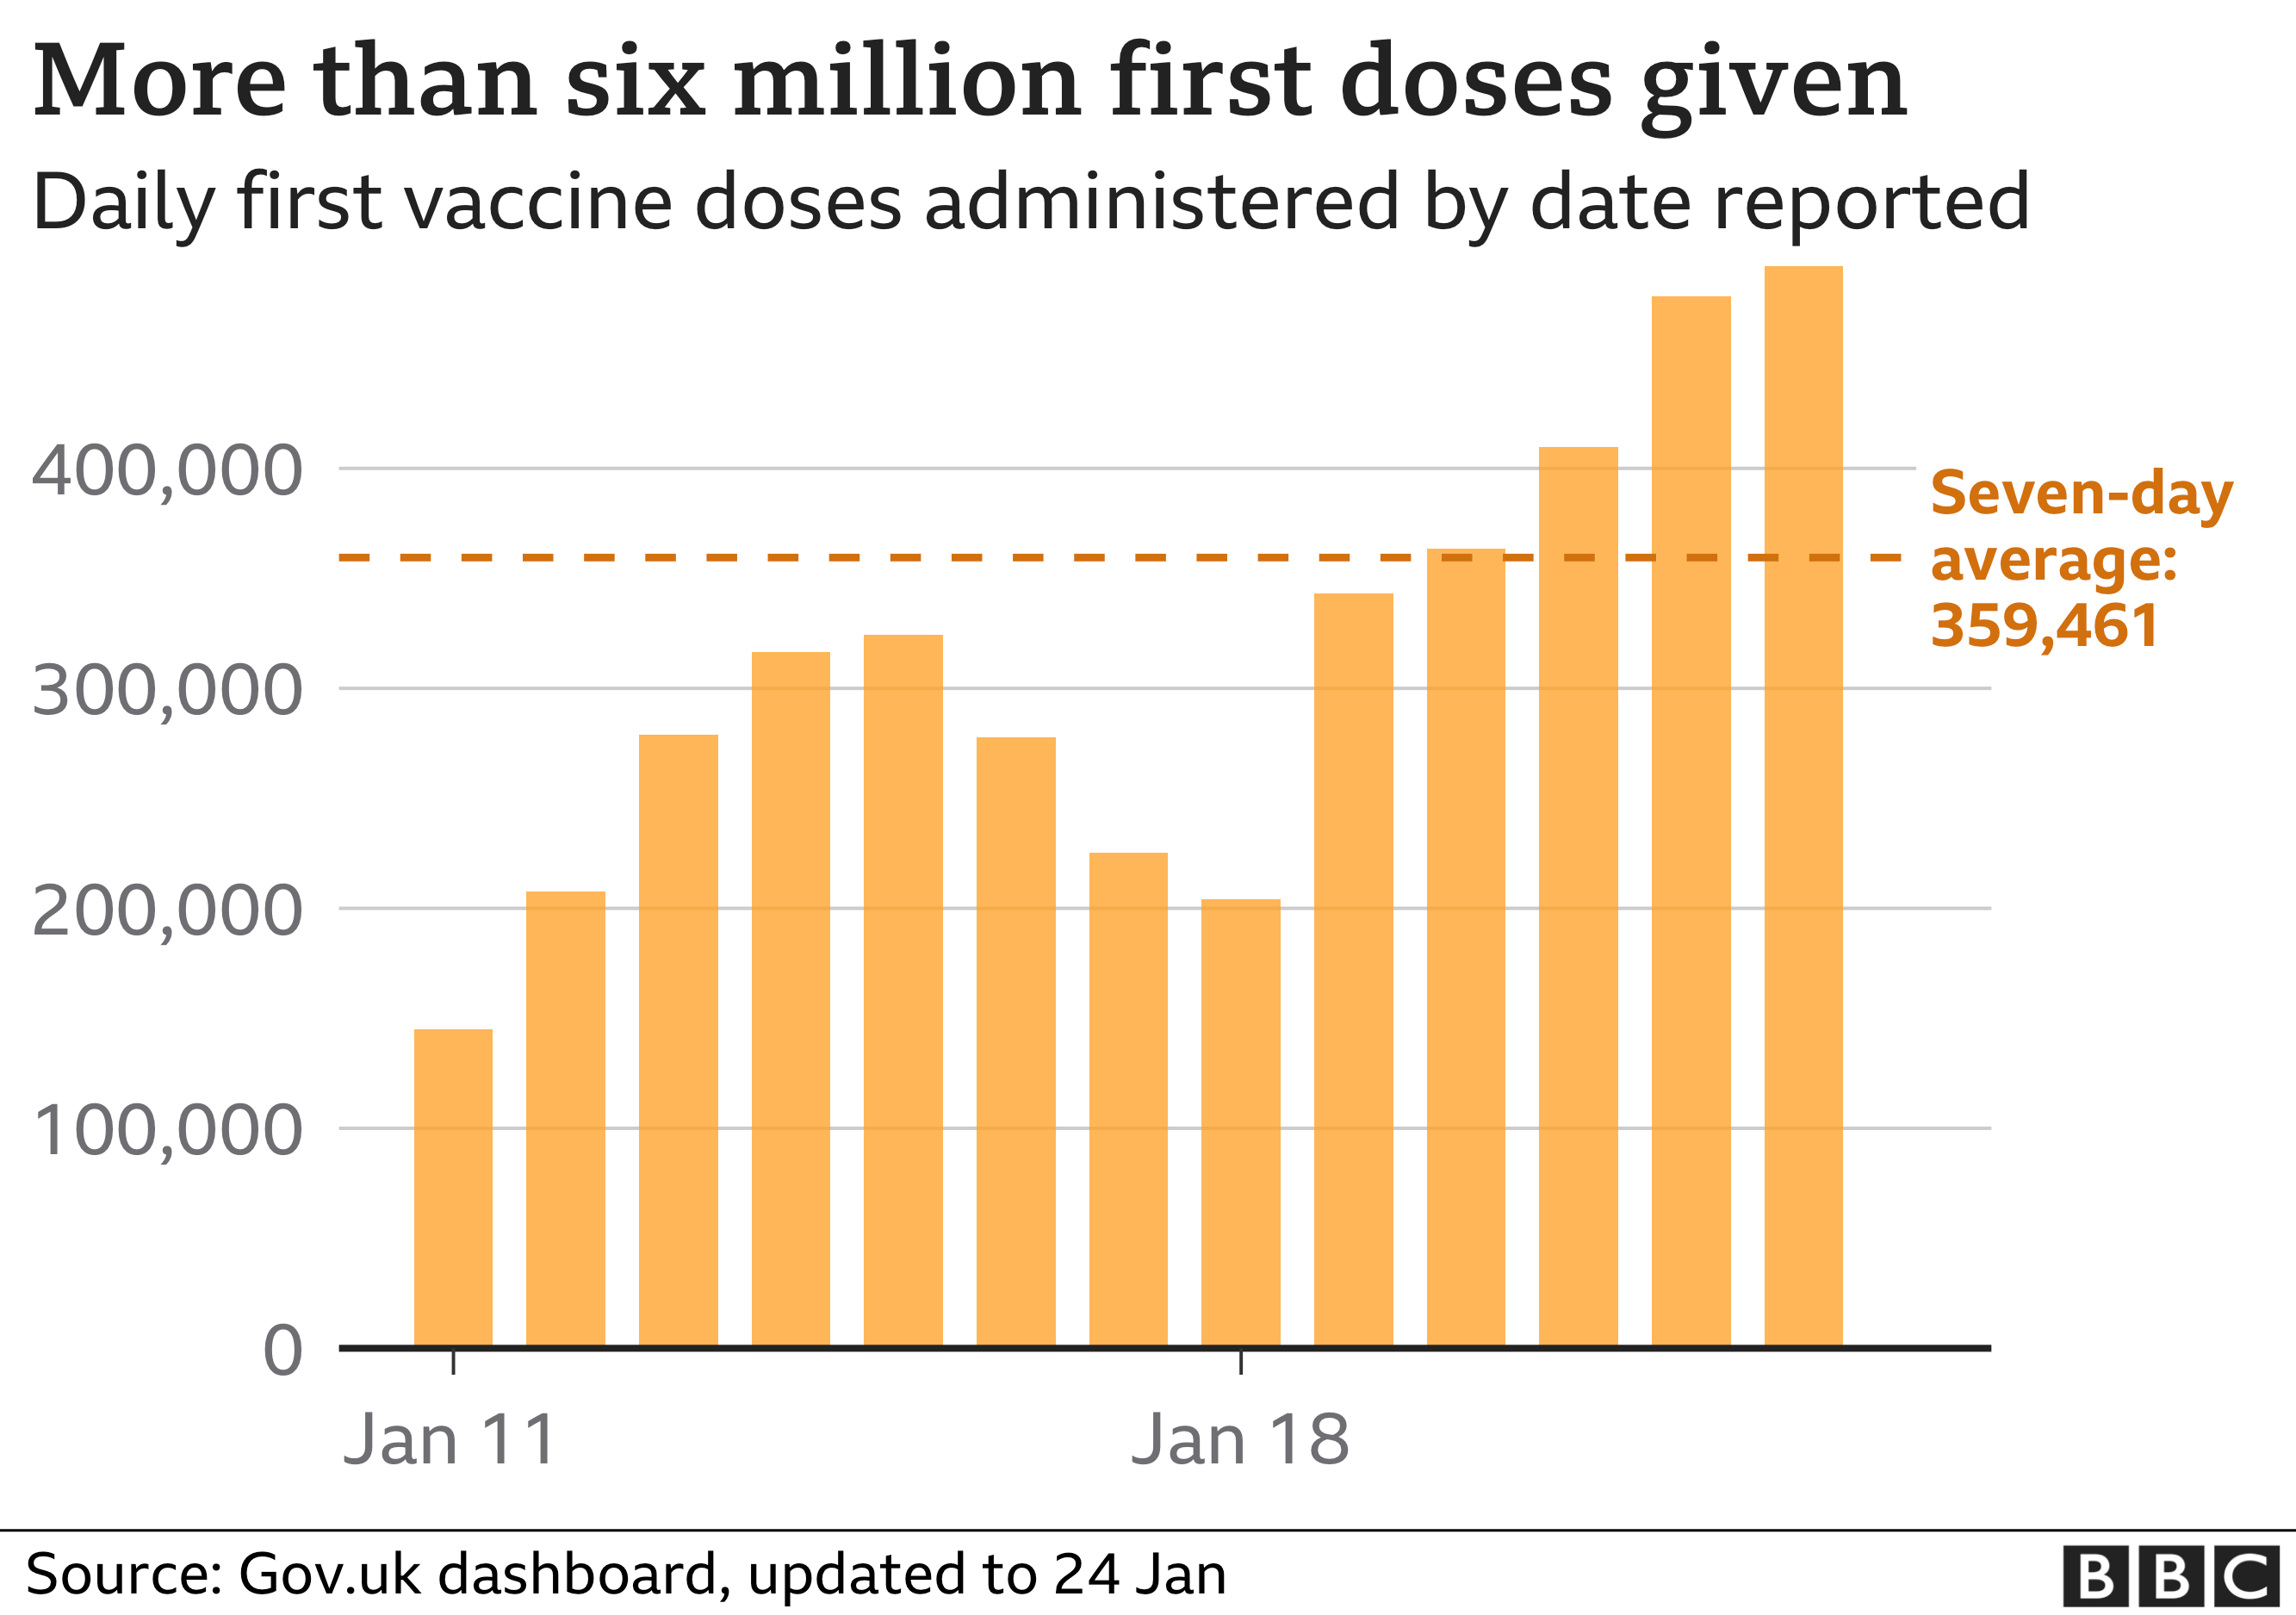 Chart shows daily number of first dose vaccines given - so far more than six million in total